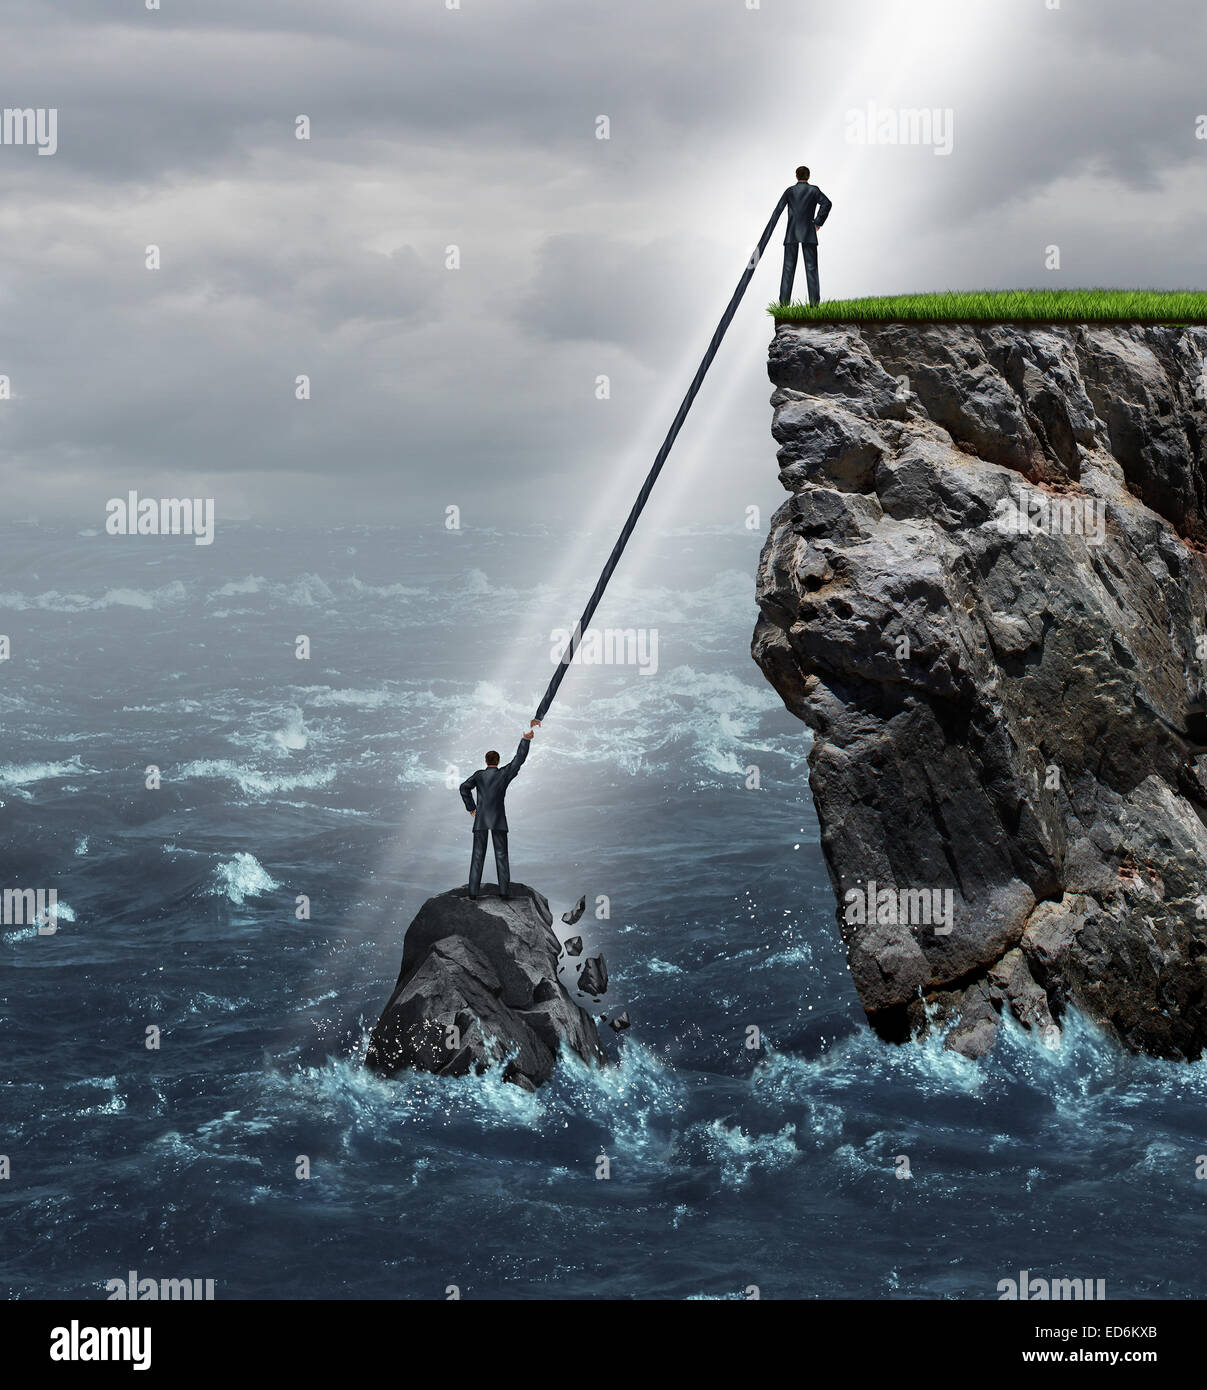 Embrace opportunity business concept as a person in a crisis stranded in the ocean being supported by an extended - Stock Image